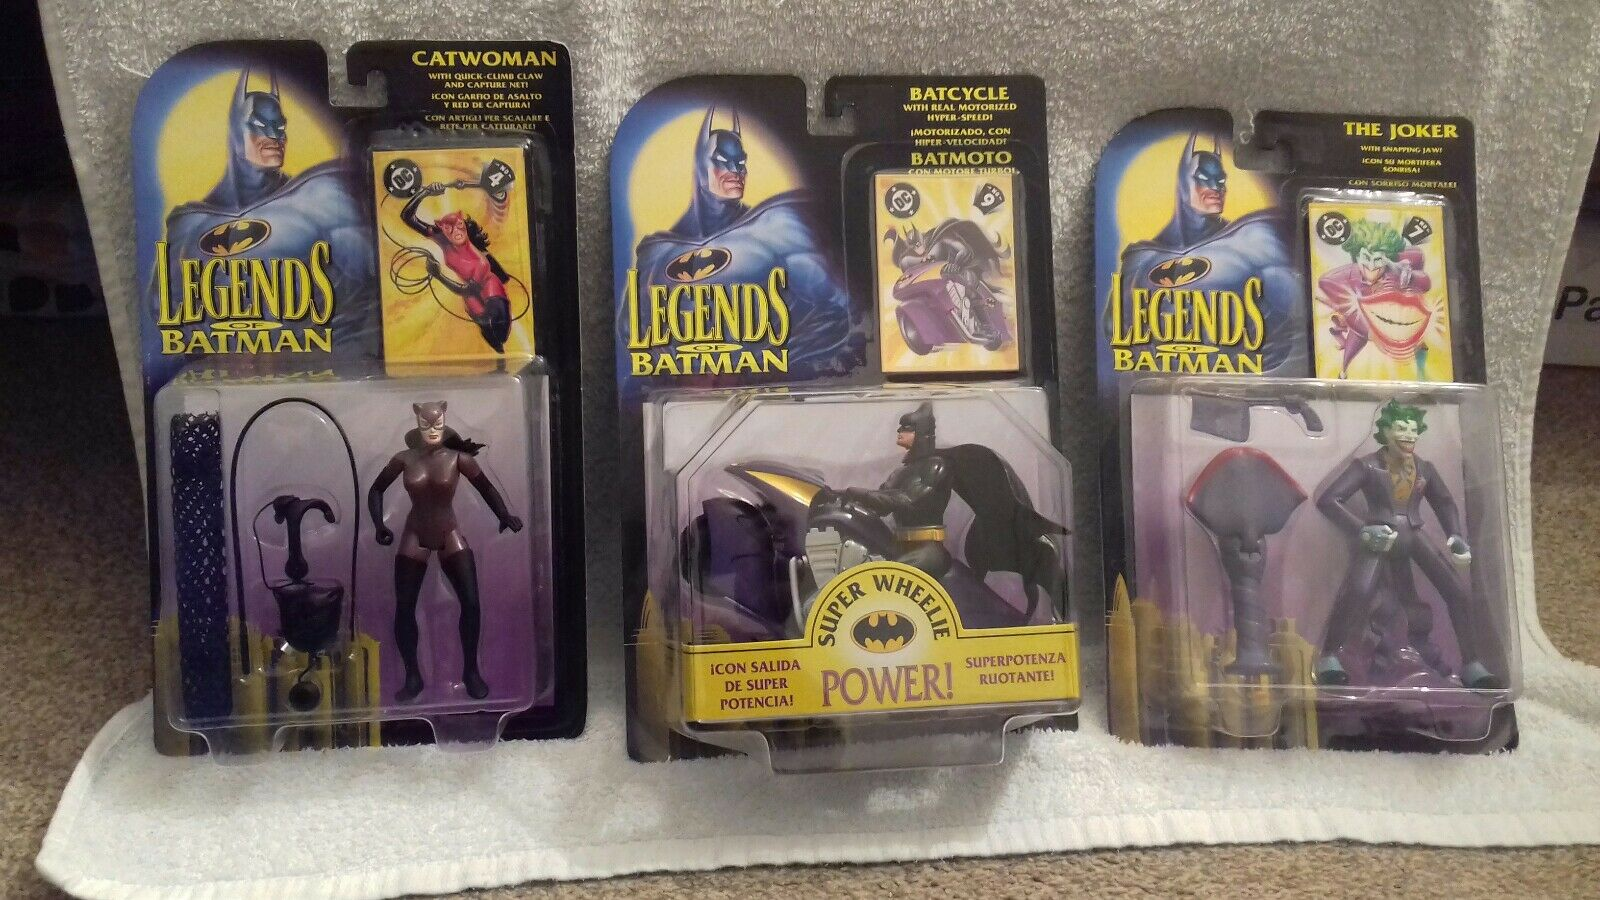 Set of 3 Kenner Legends Of Batman figures